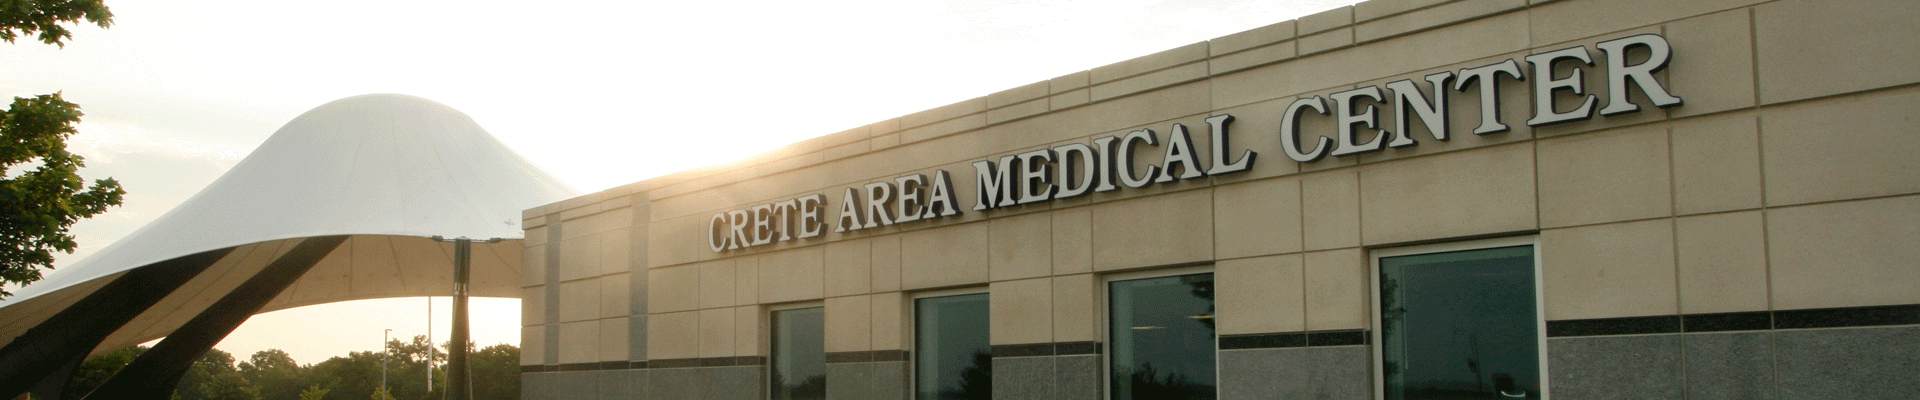 crete area medical center